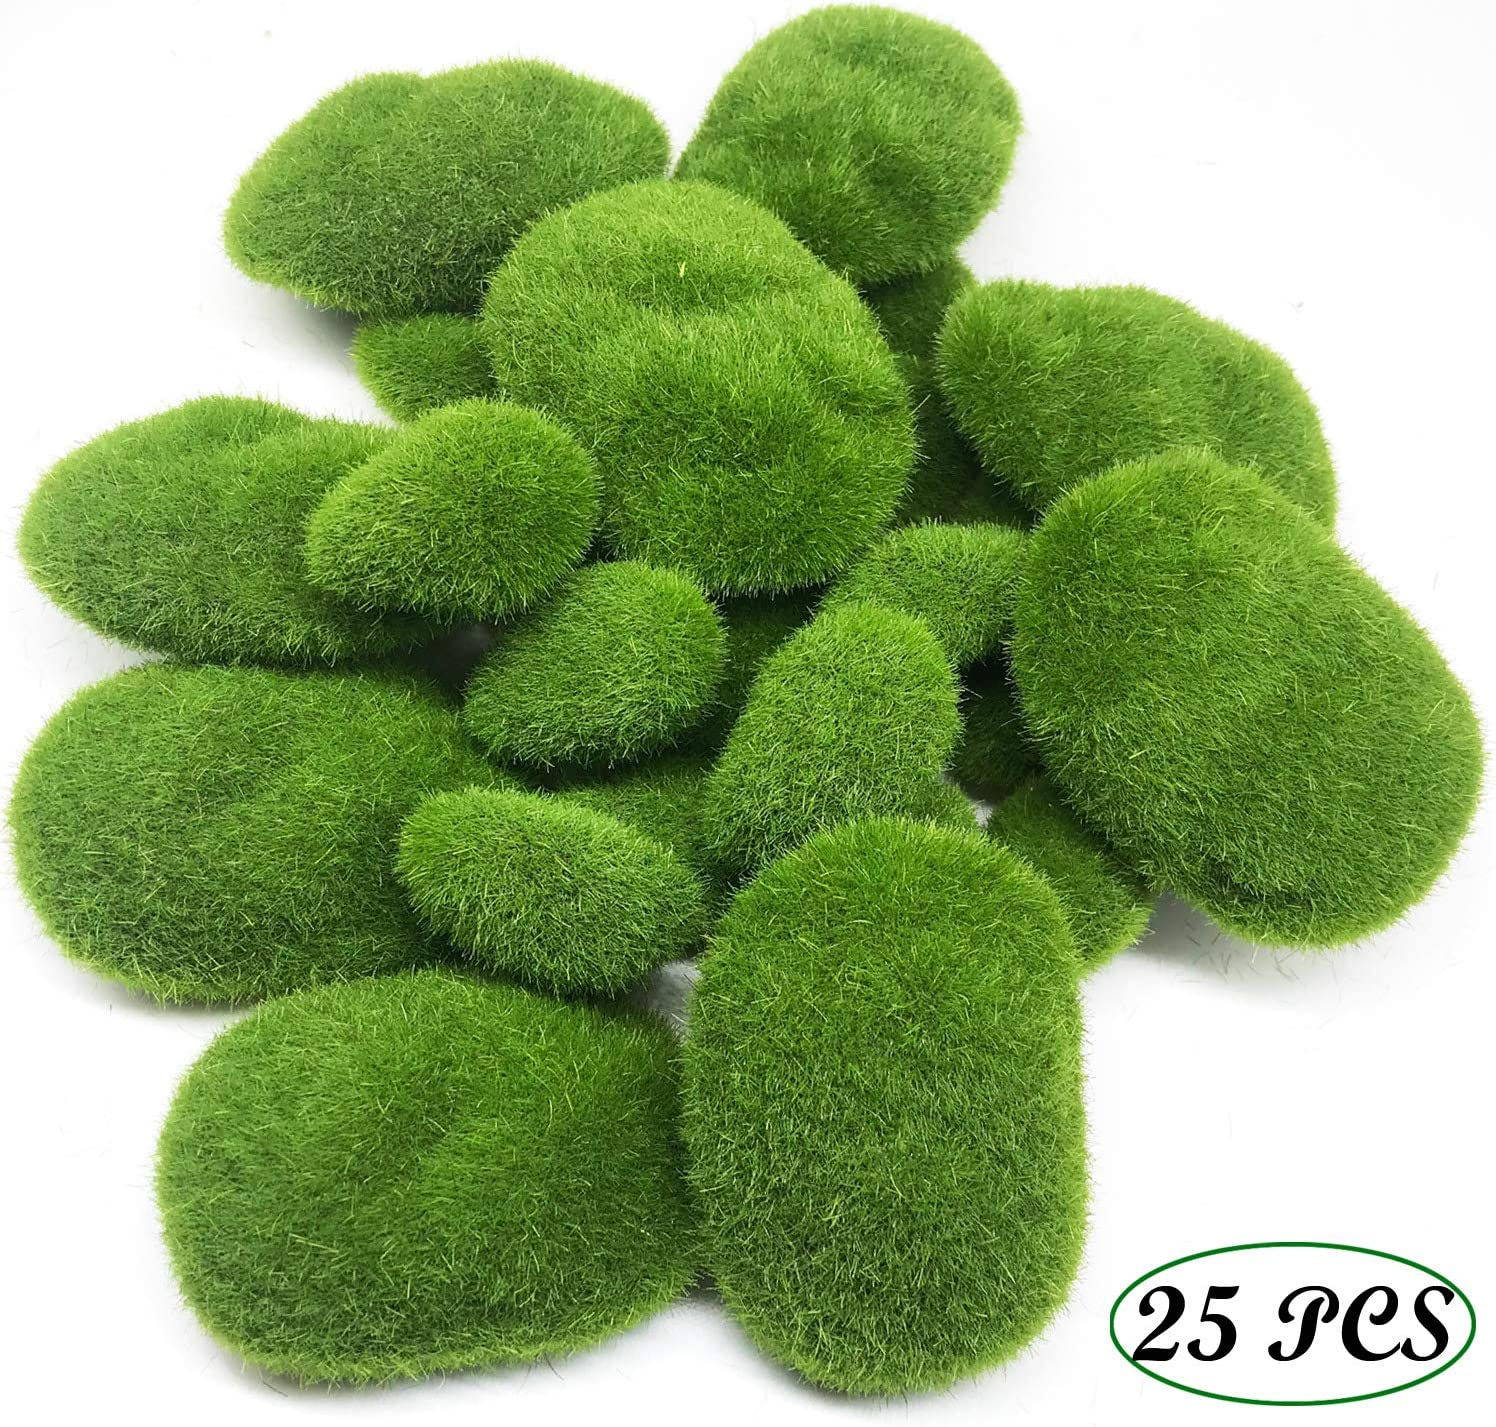 Fake Moss Decor for Floral Arrangements 30-3 Size Woohome 30 PCS 3 Size Artificial Moss Rocks Decorative Fairy Gardens and Crafting Green Moss Balls